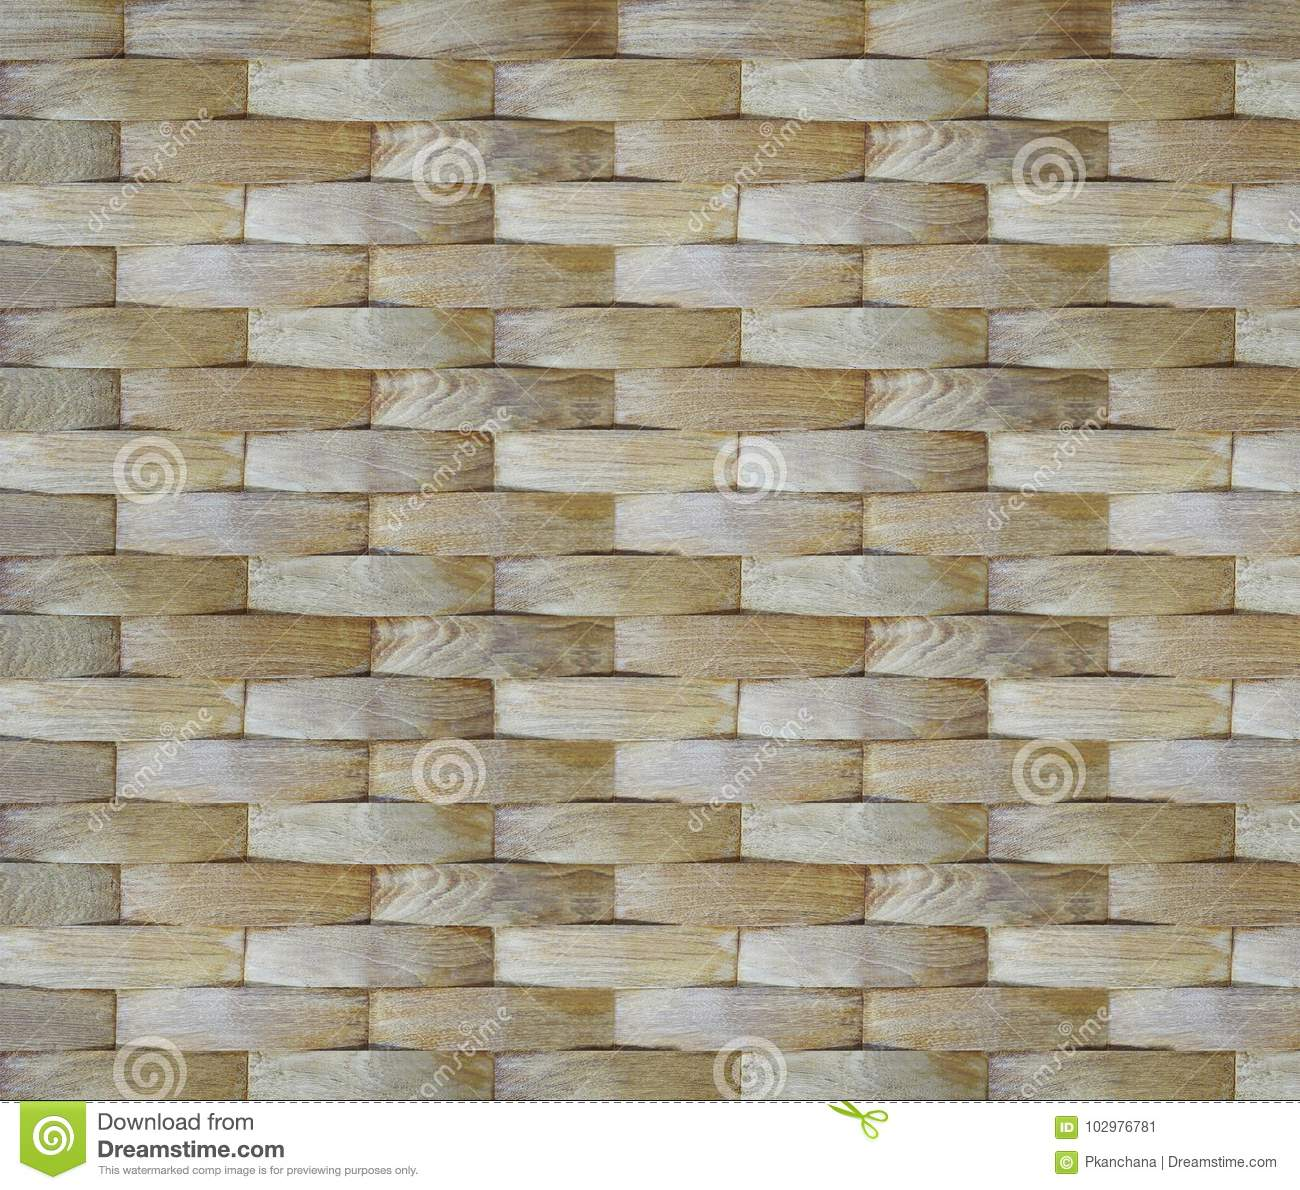 Wall background. Geometric curve veneer wood pattern for interior design.